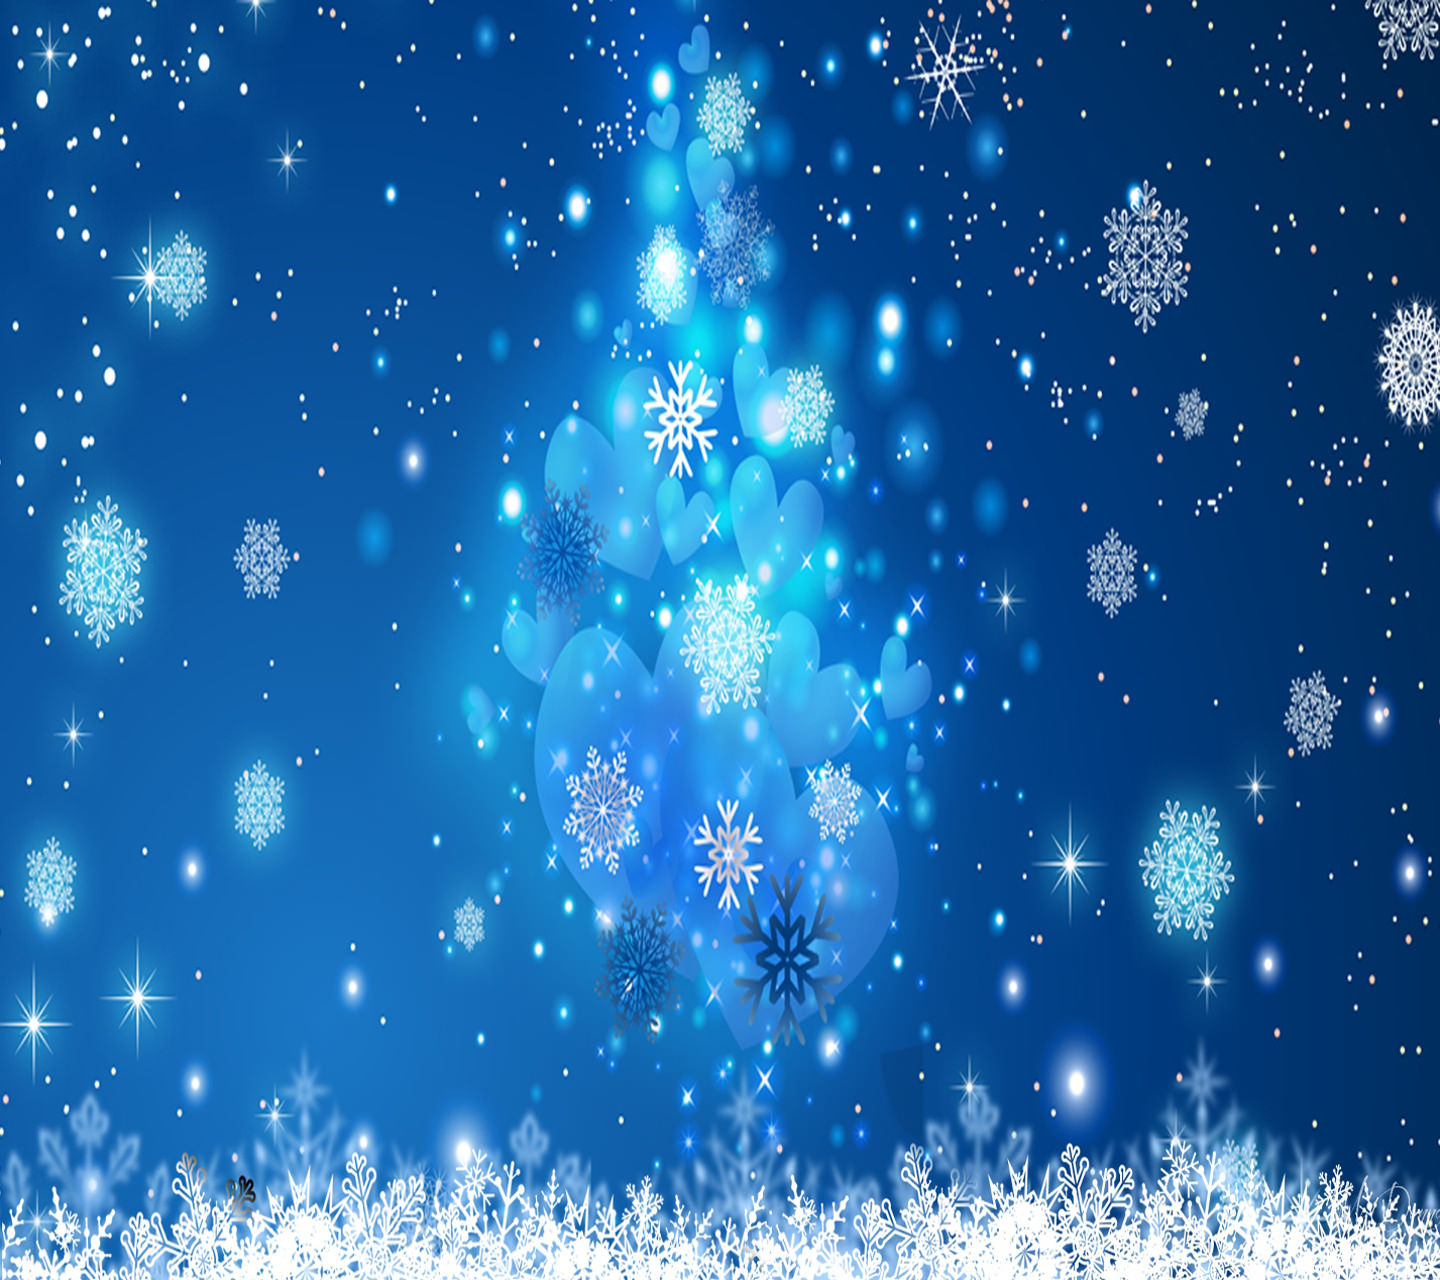 Aesome Cool Snowflakes Wallpaper